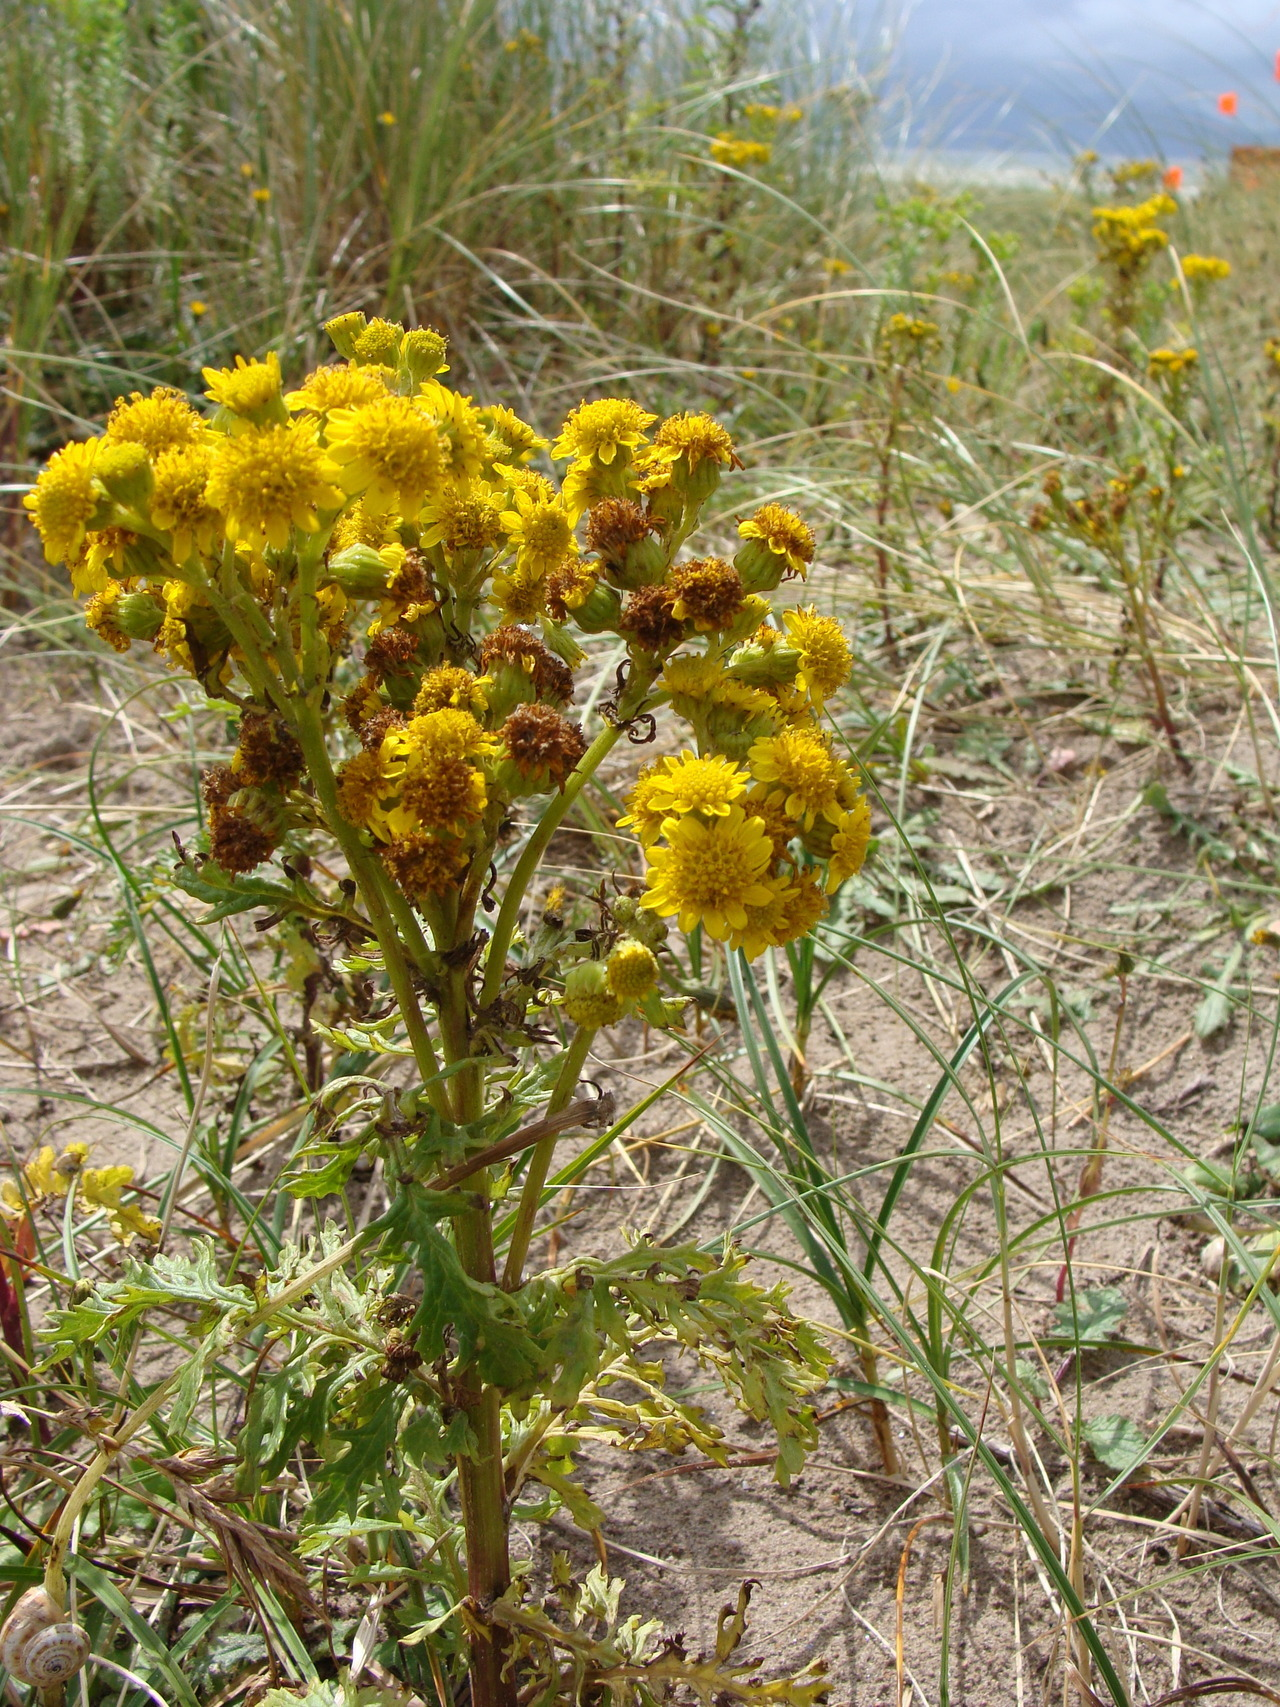 Common Ragwort at the beach! Taken at Chicago, Illinois.